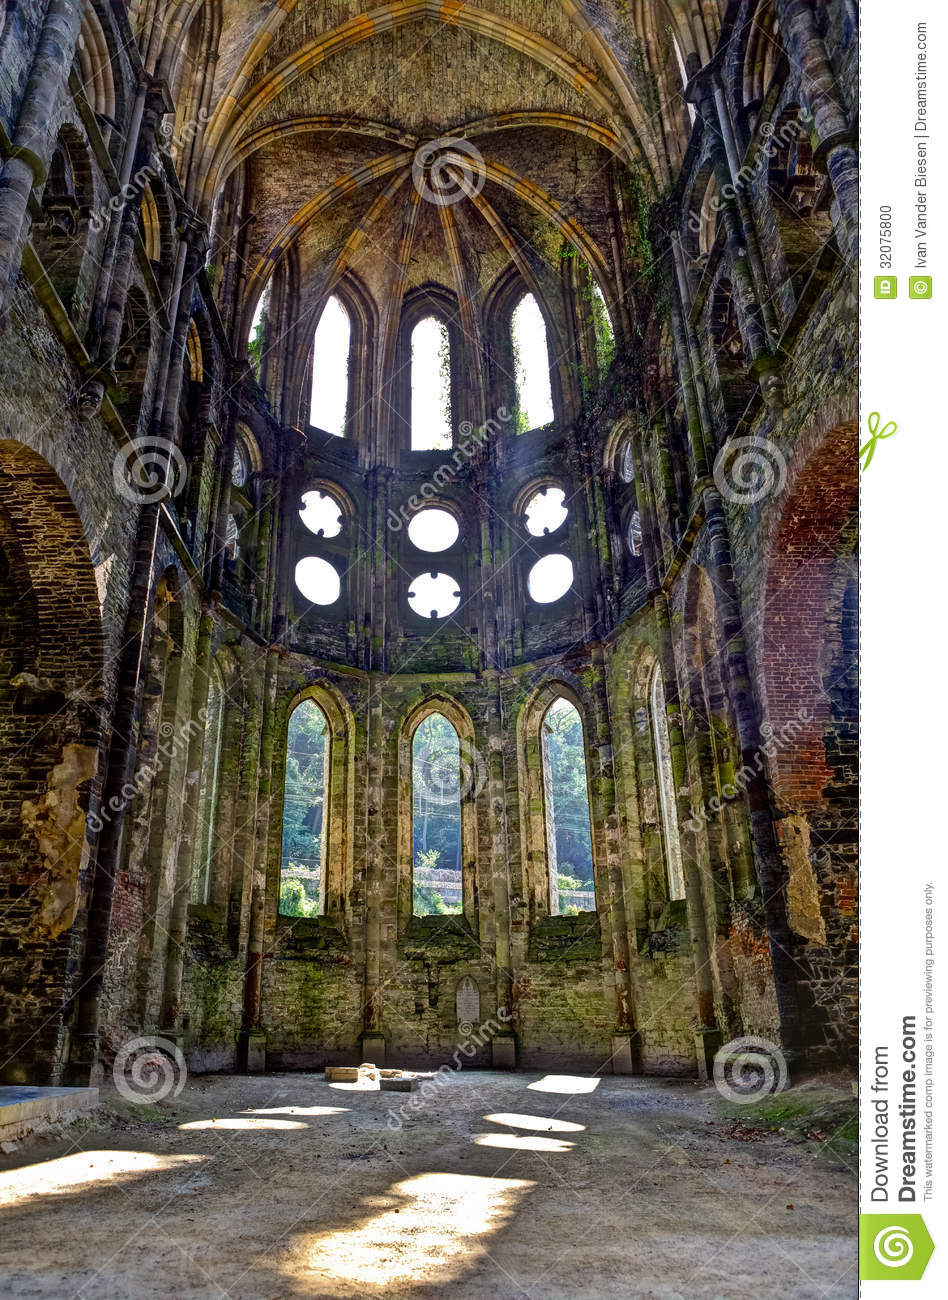 Ruins Of The Choir Of The Church In The Abbey Of Villers La Ville Belgium Stock Photo Image